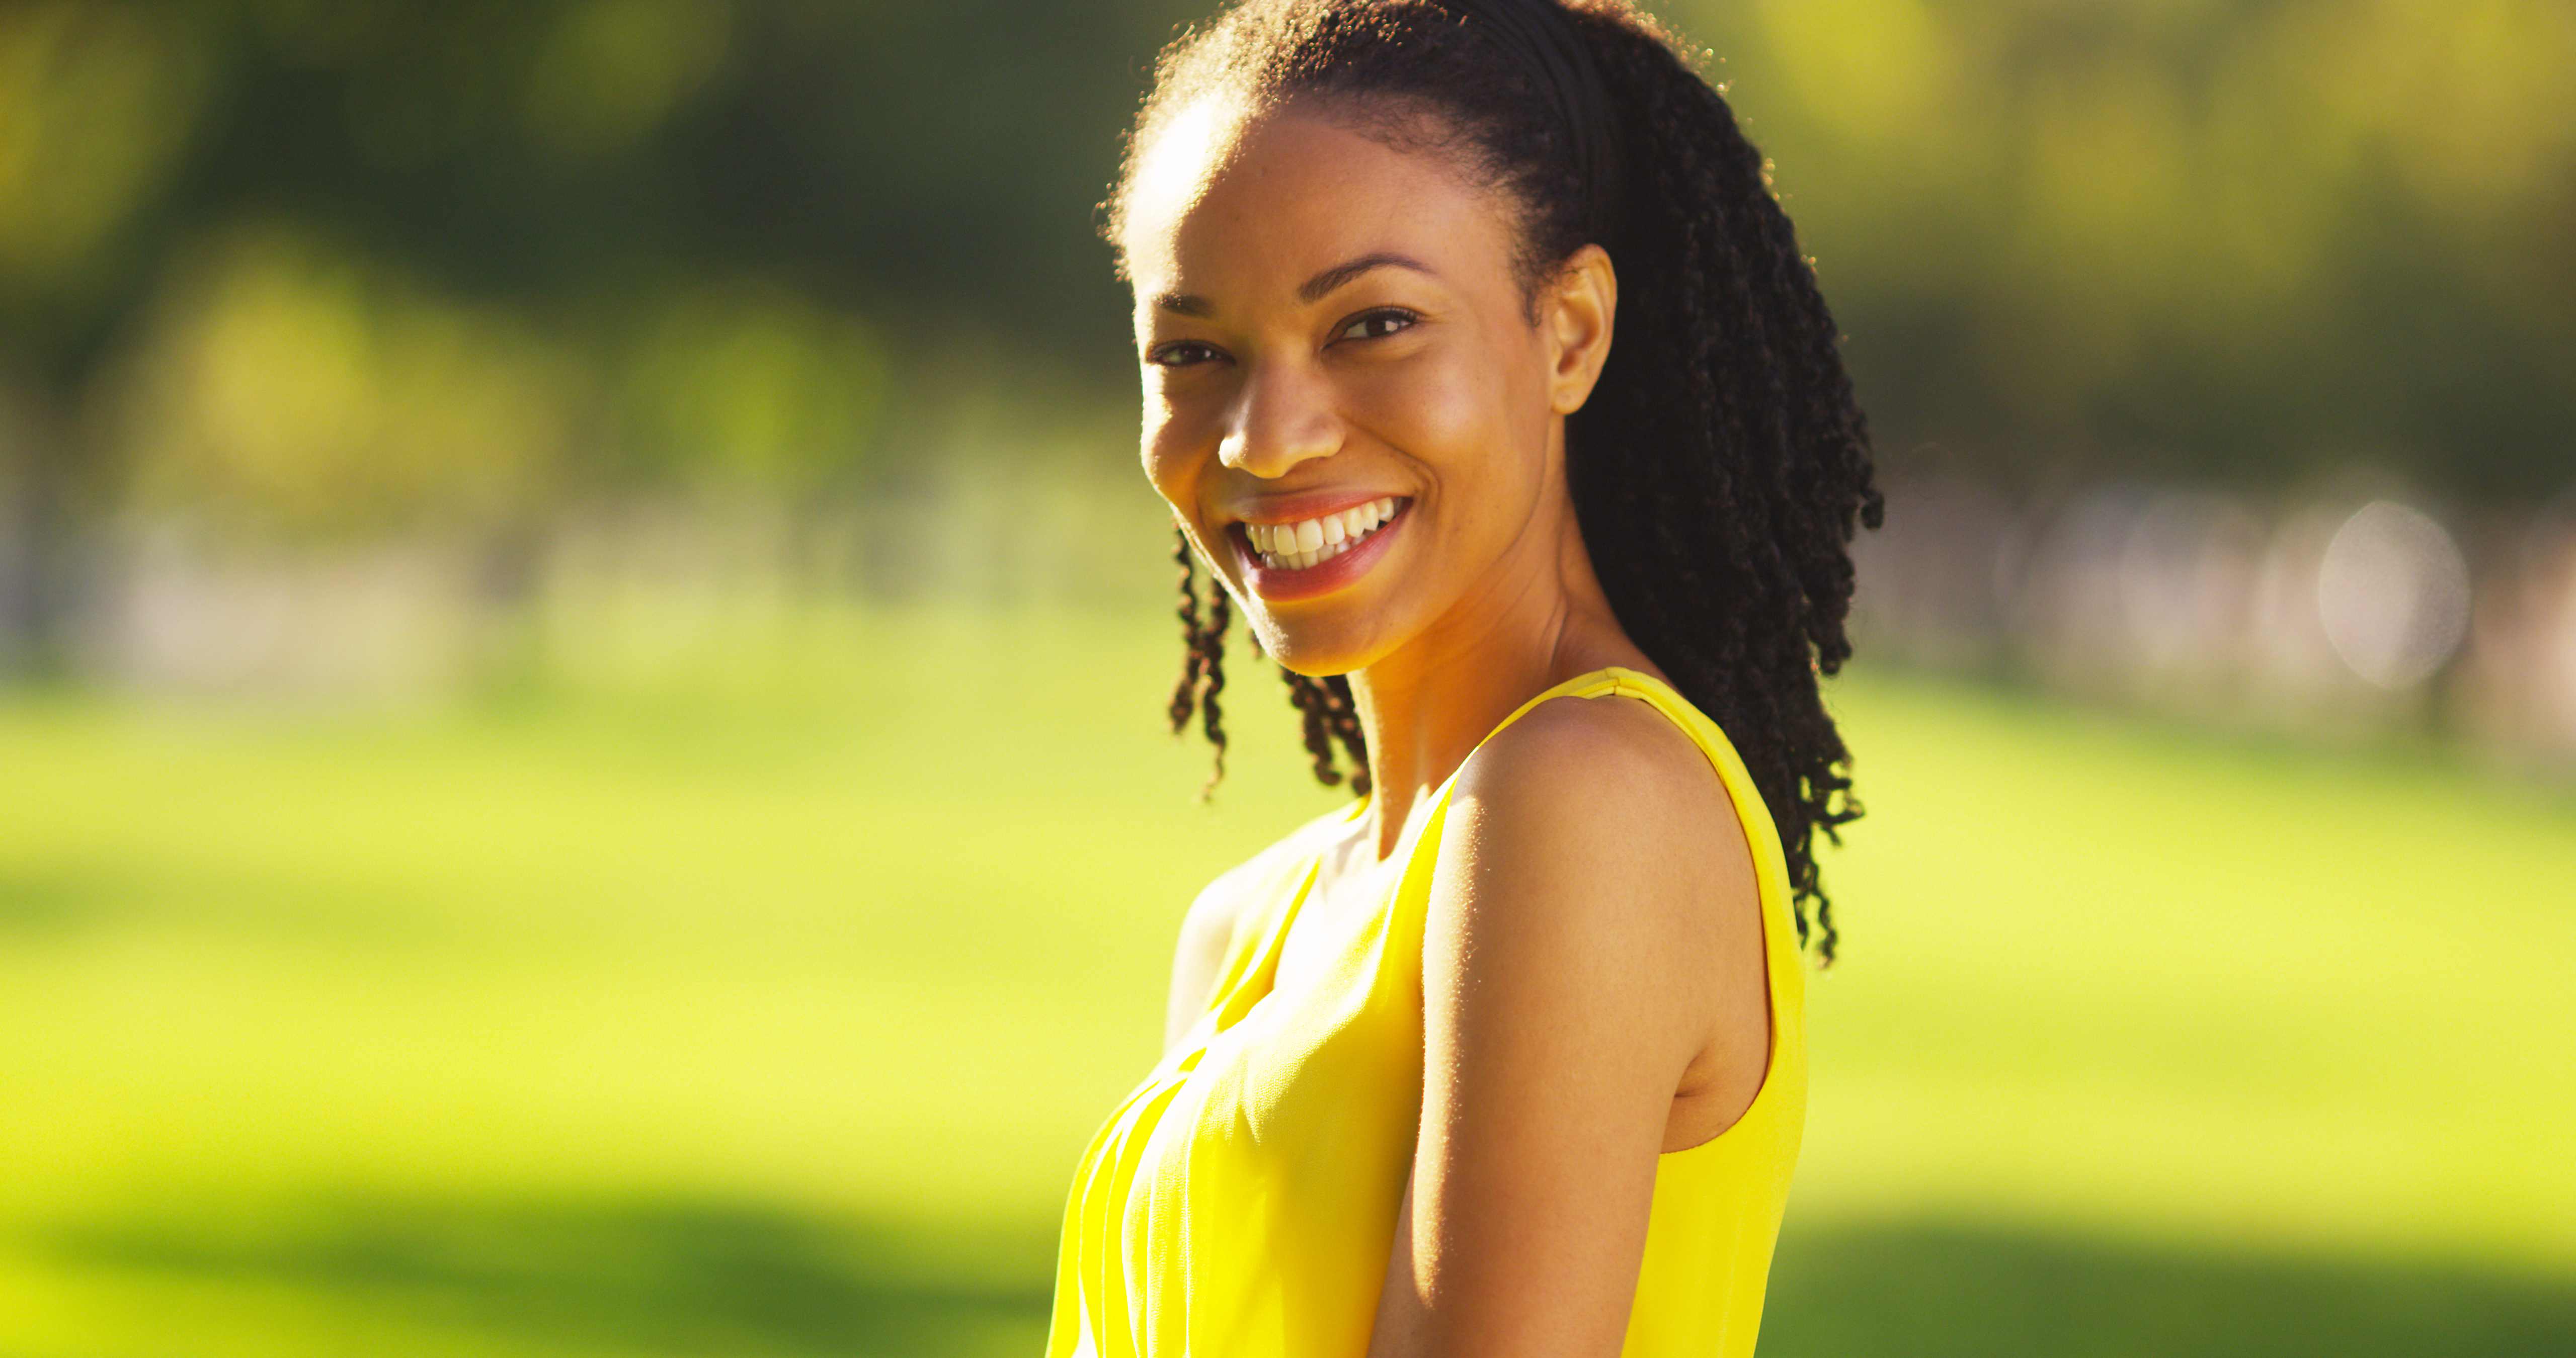 Black woman smiling in a field